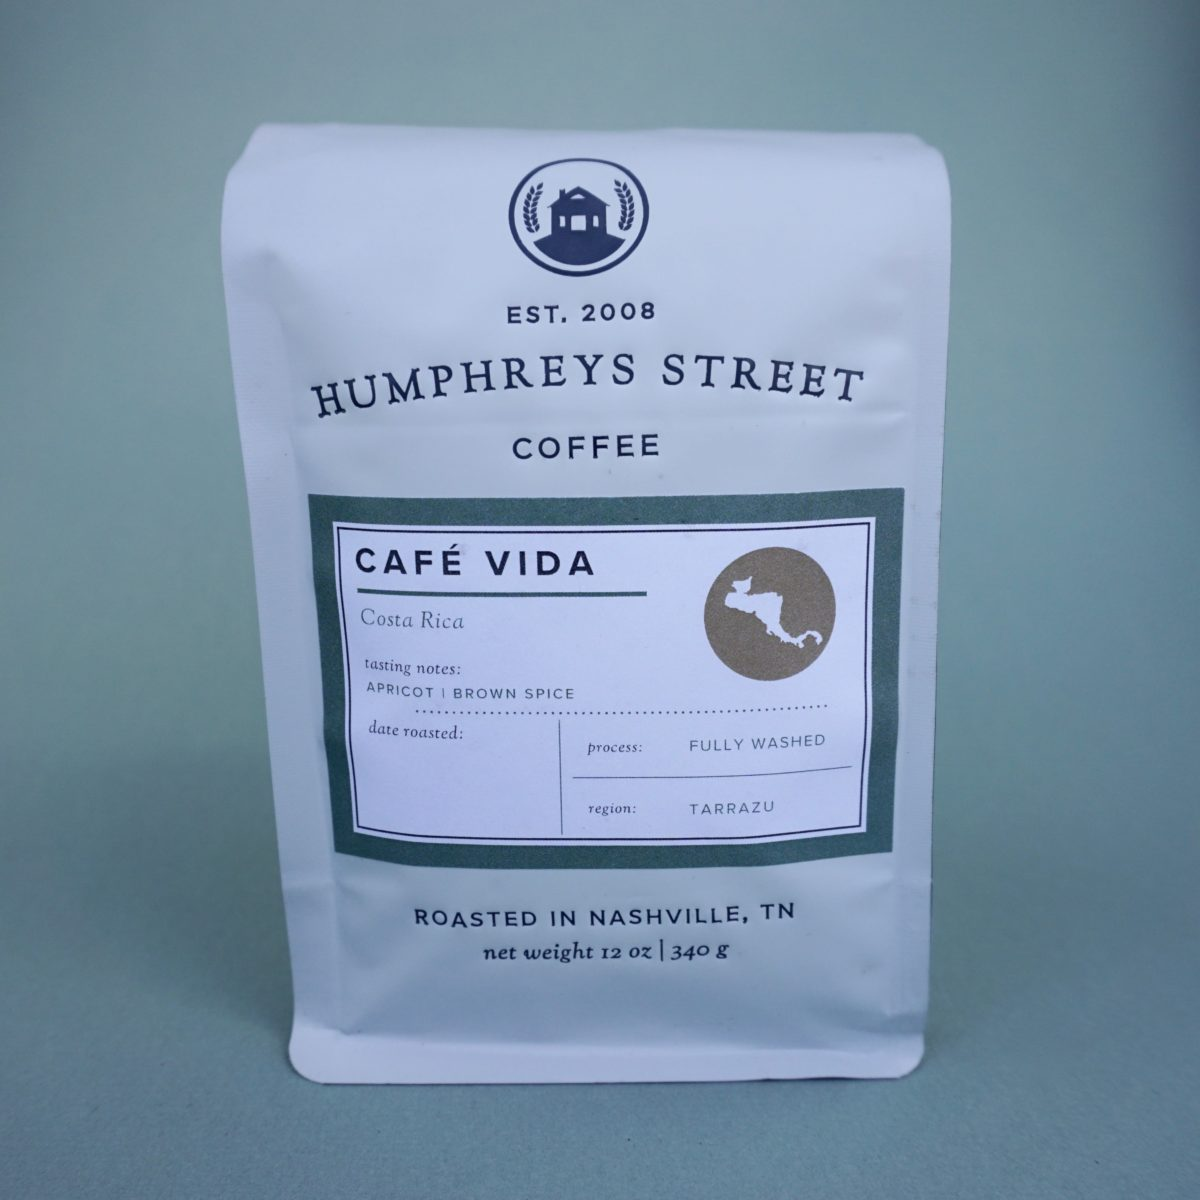 humphreys street coffee cafe vida costa rica